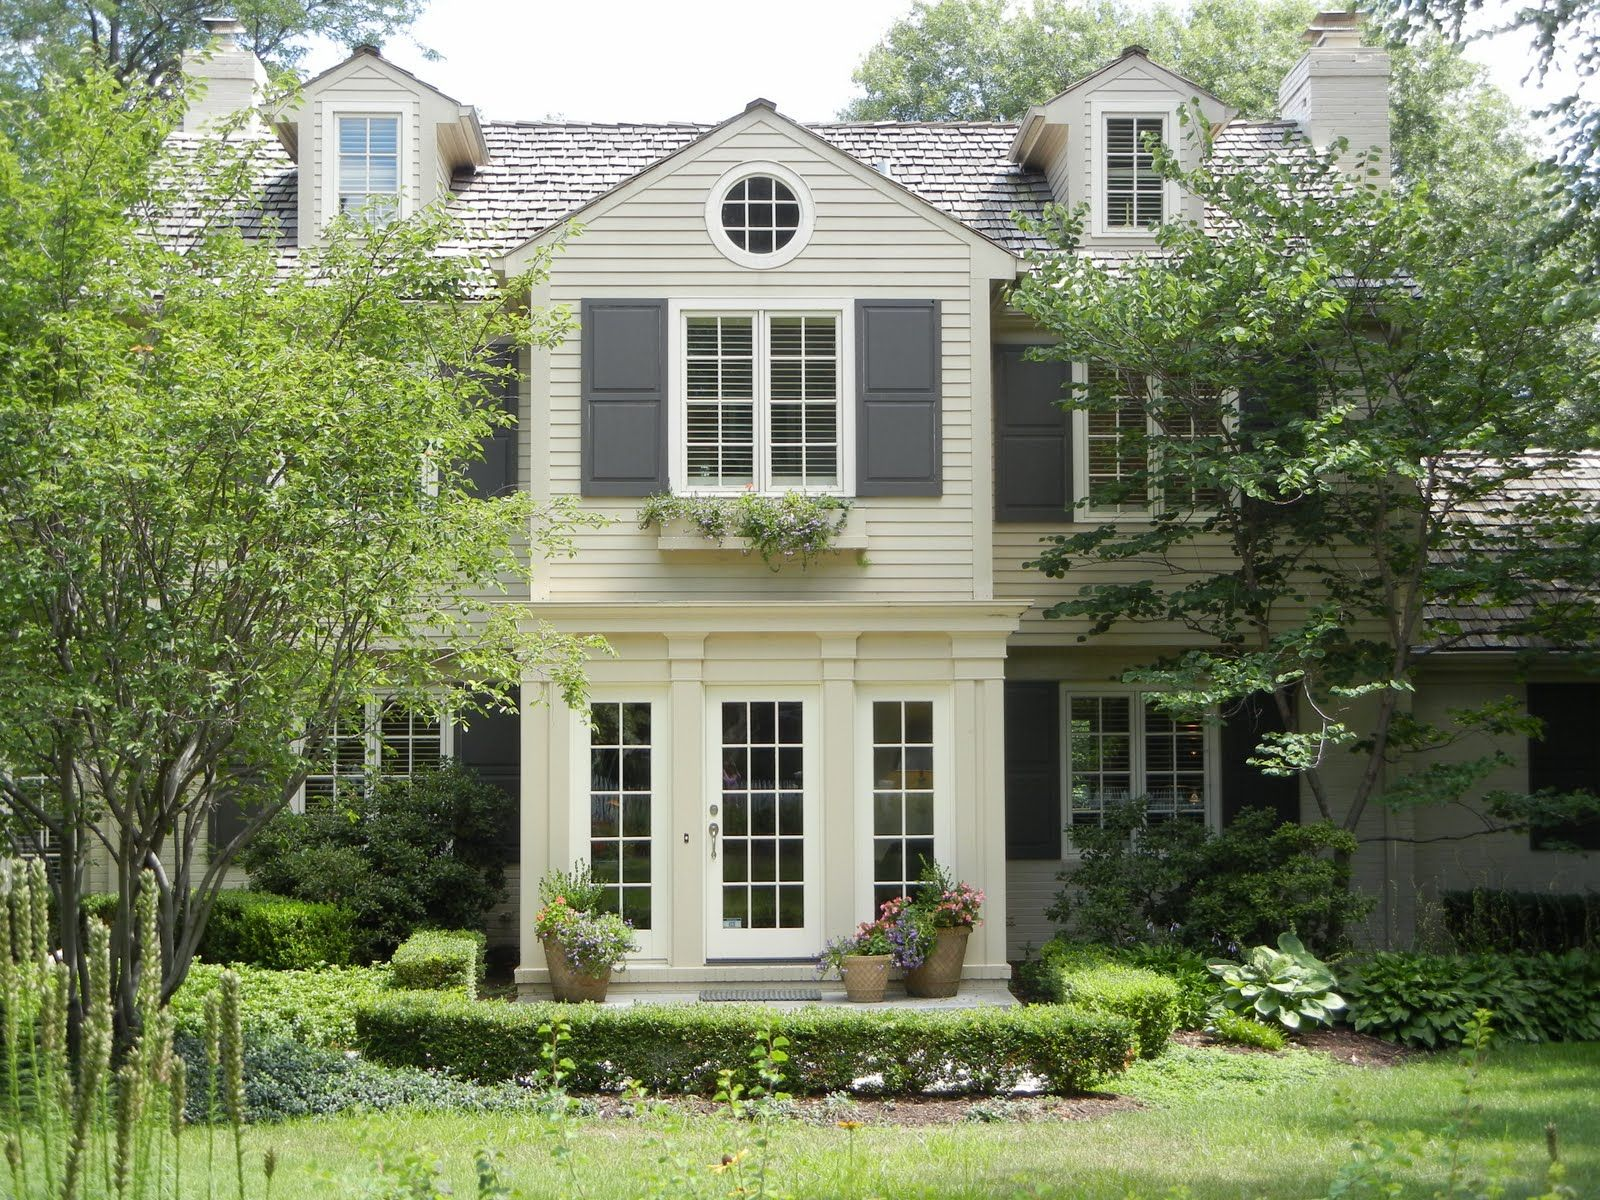 exterior colors we talked about (cream house, white trim